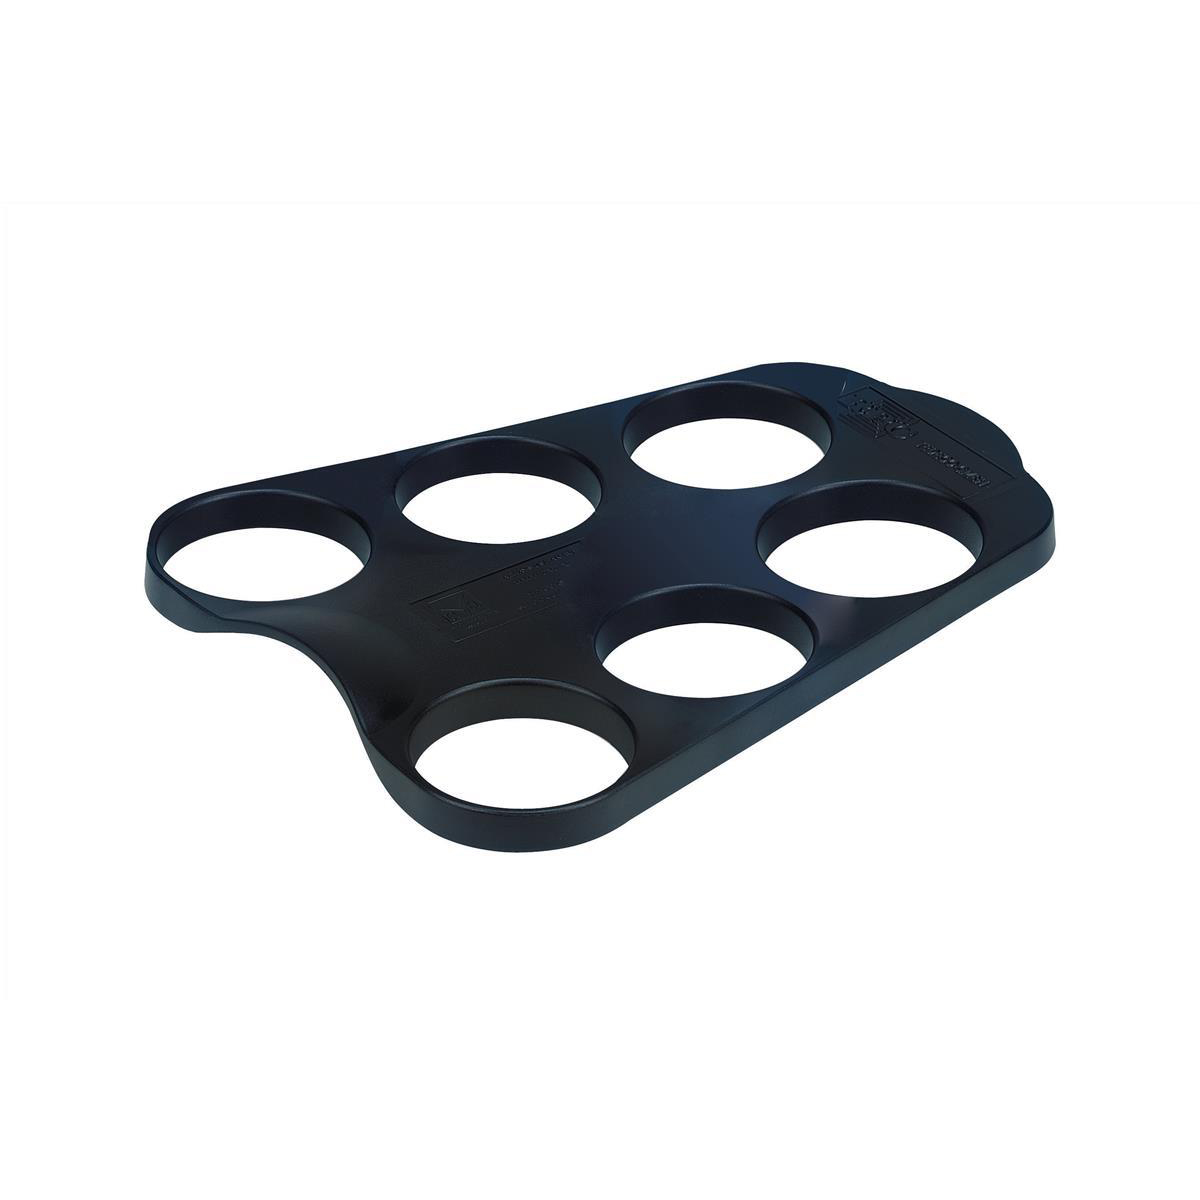 Washing Up Bowls / Brushes / Drainers Cup Carry Tray Capacity 6 of 207ml or 266ml Cups PS Black Pack 10